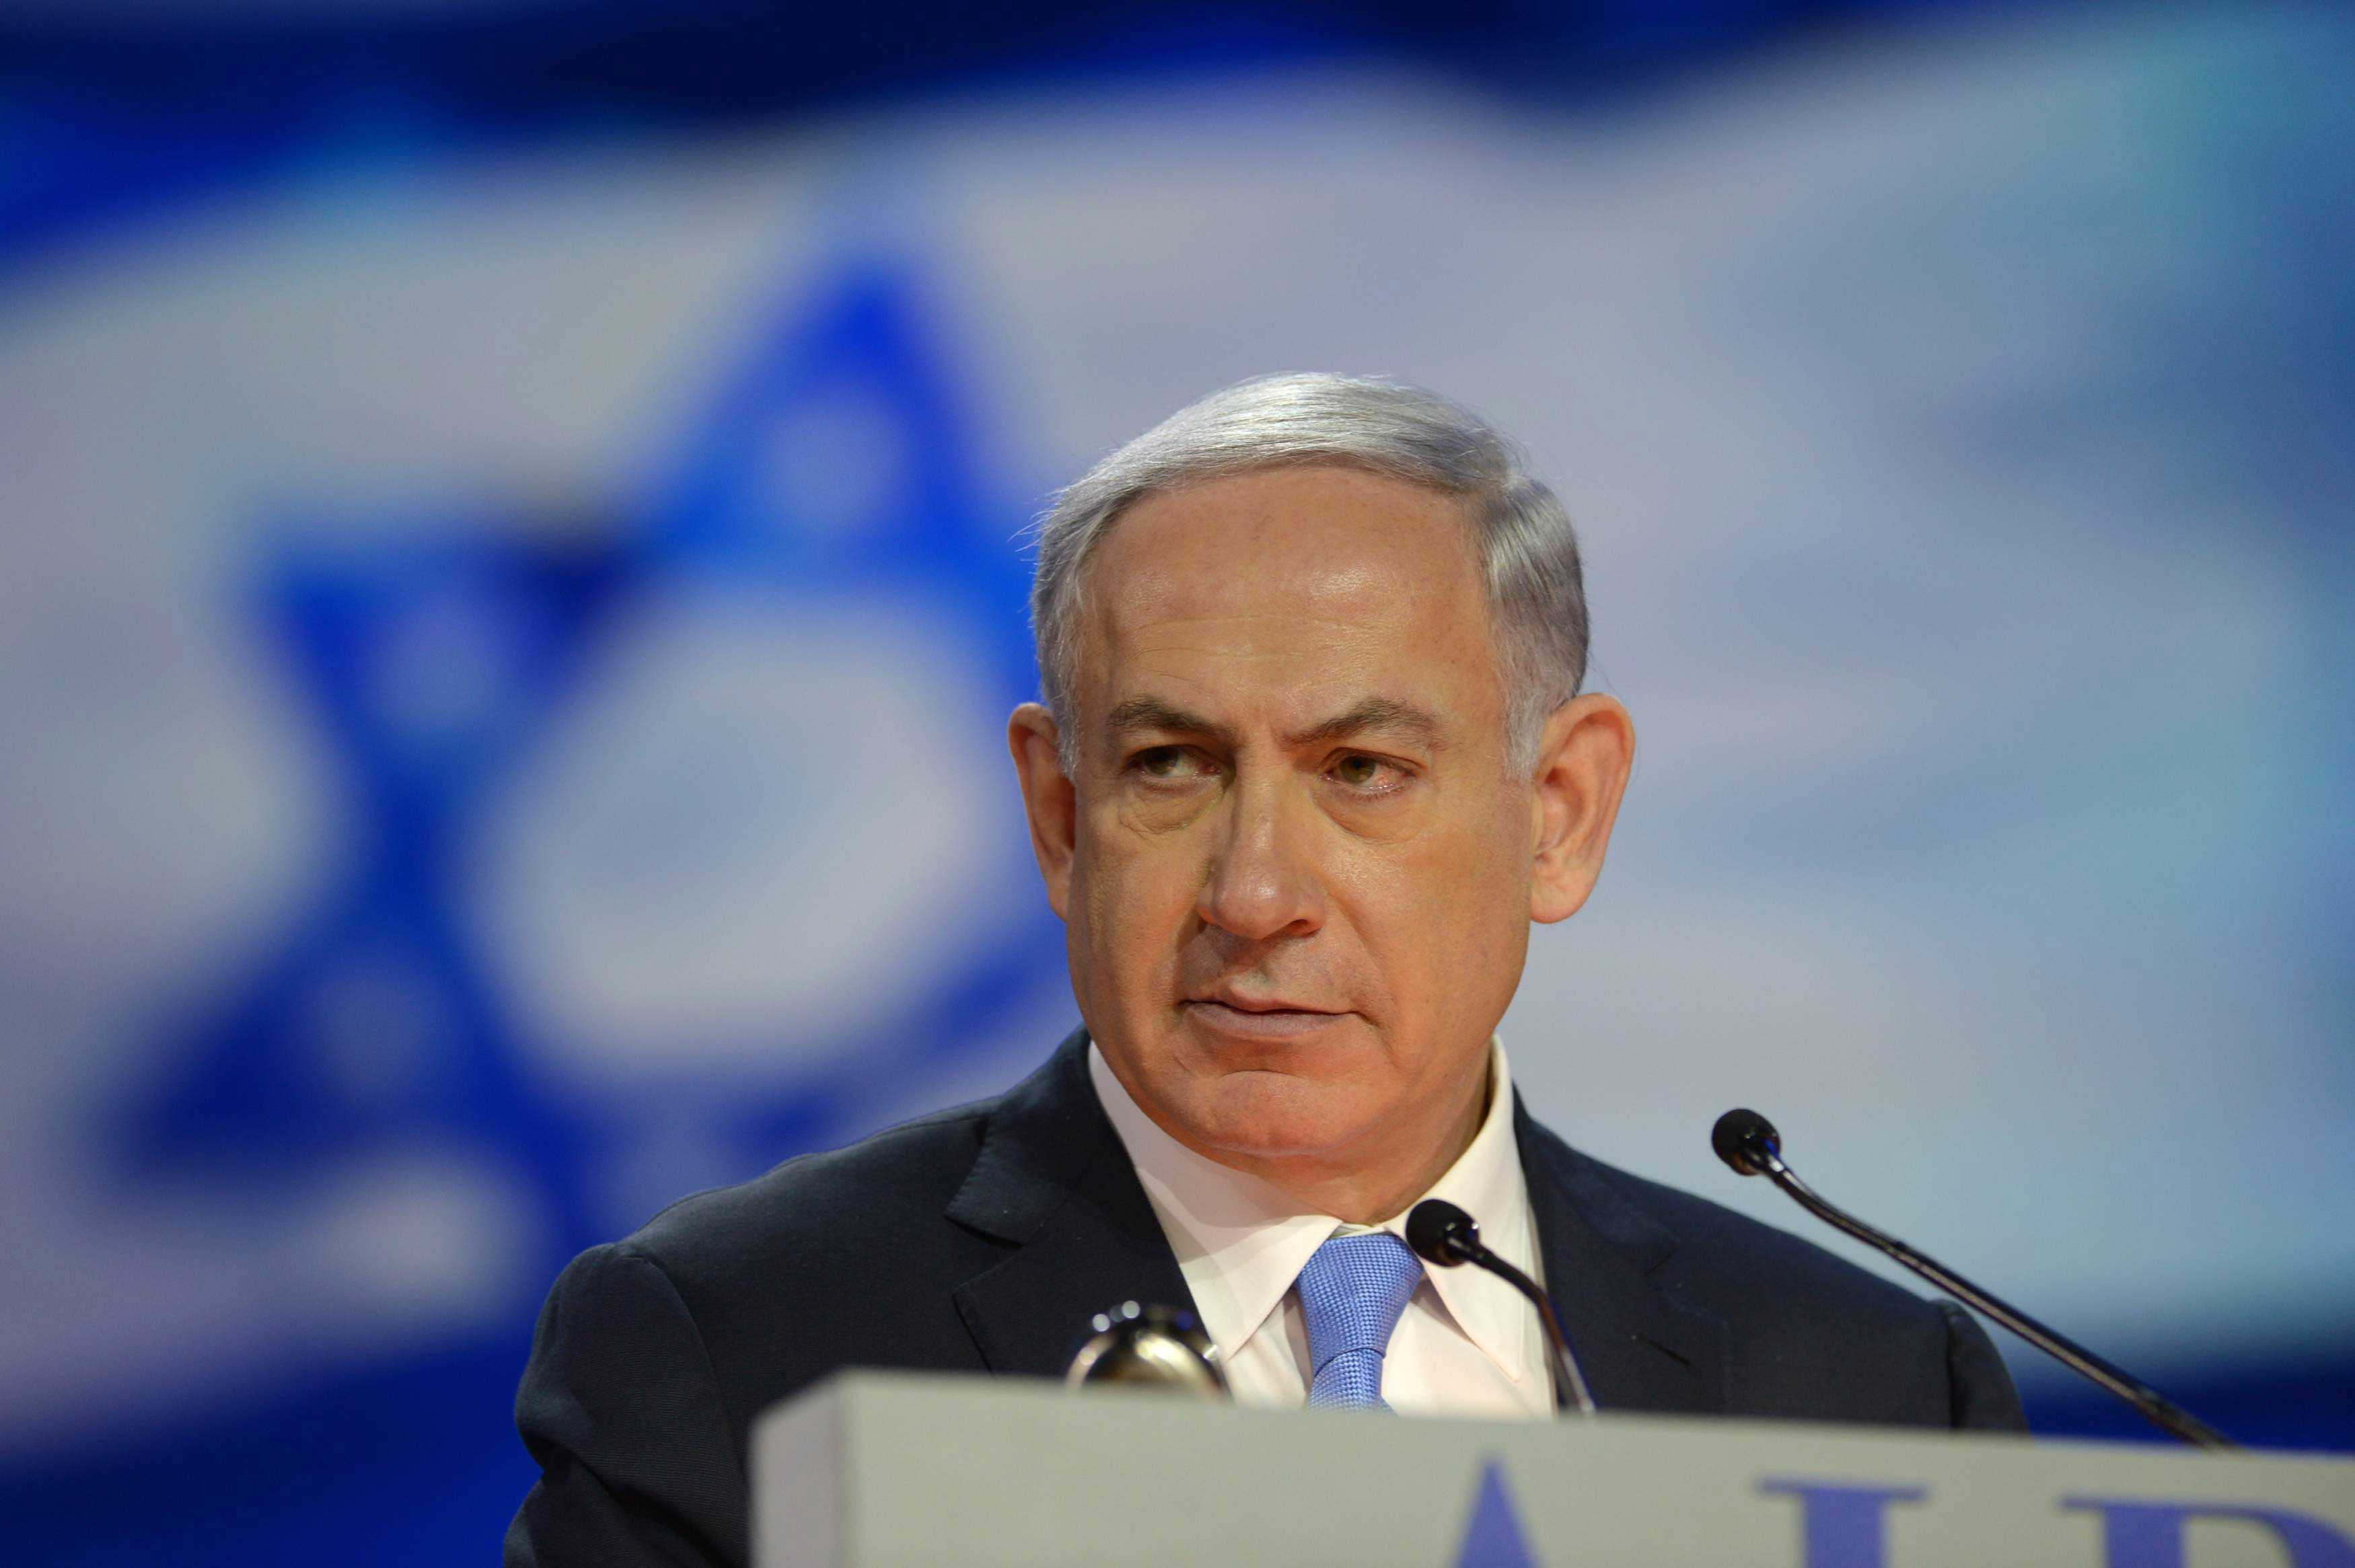 """Israeli Prime Minister Benjamin Netanyahu says his purpose in speaking to Congress is not to """"inject Israel into the American partisan debate,"""" yet that is just what has happened."""